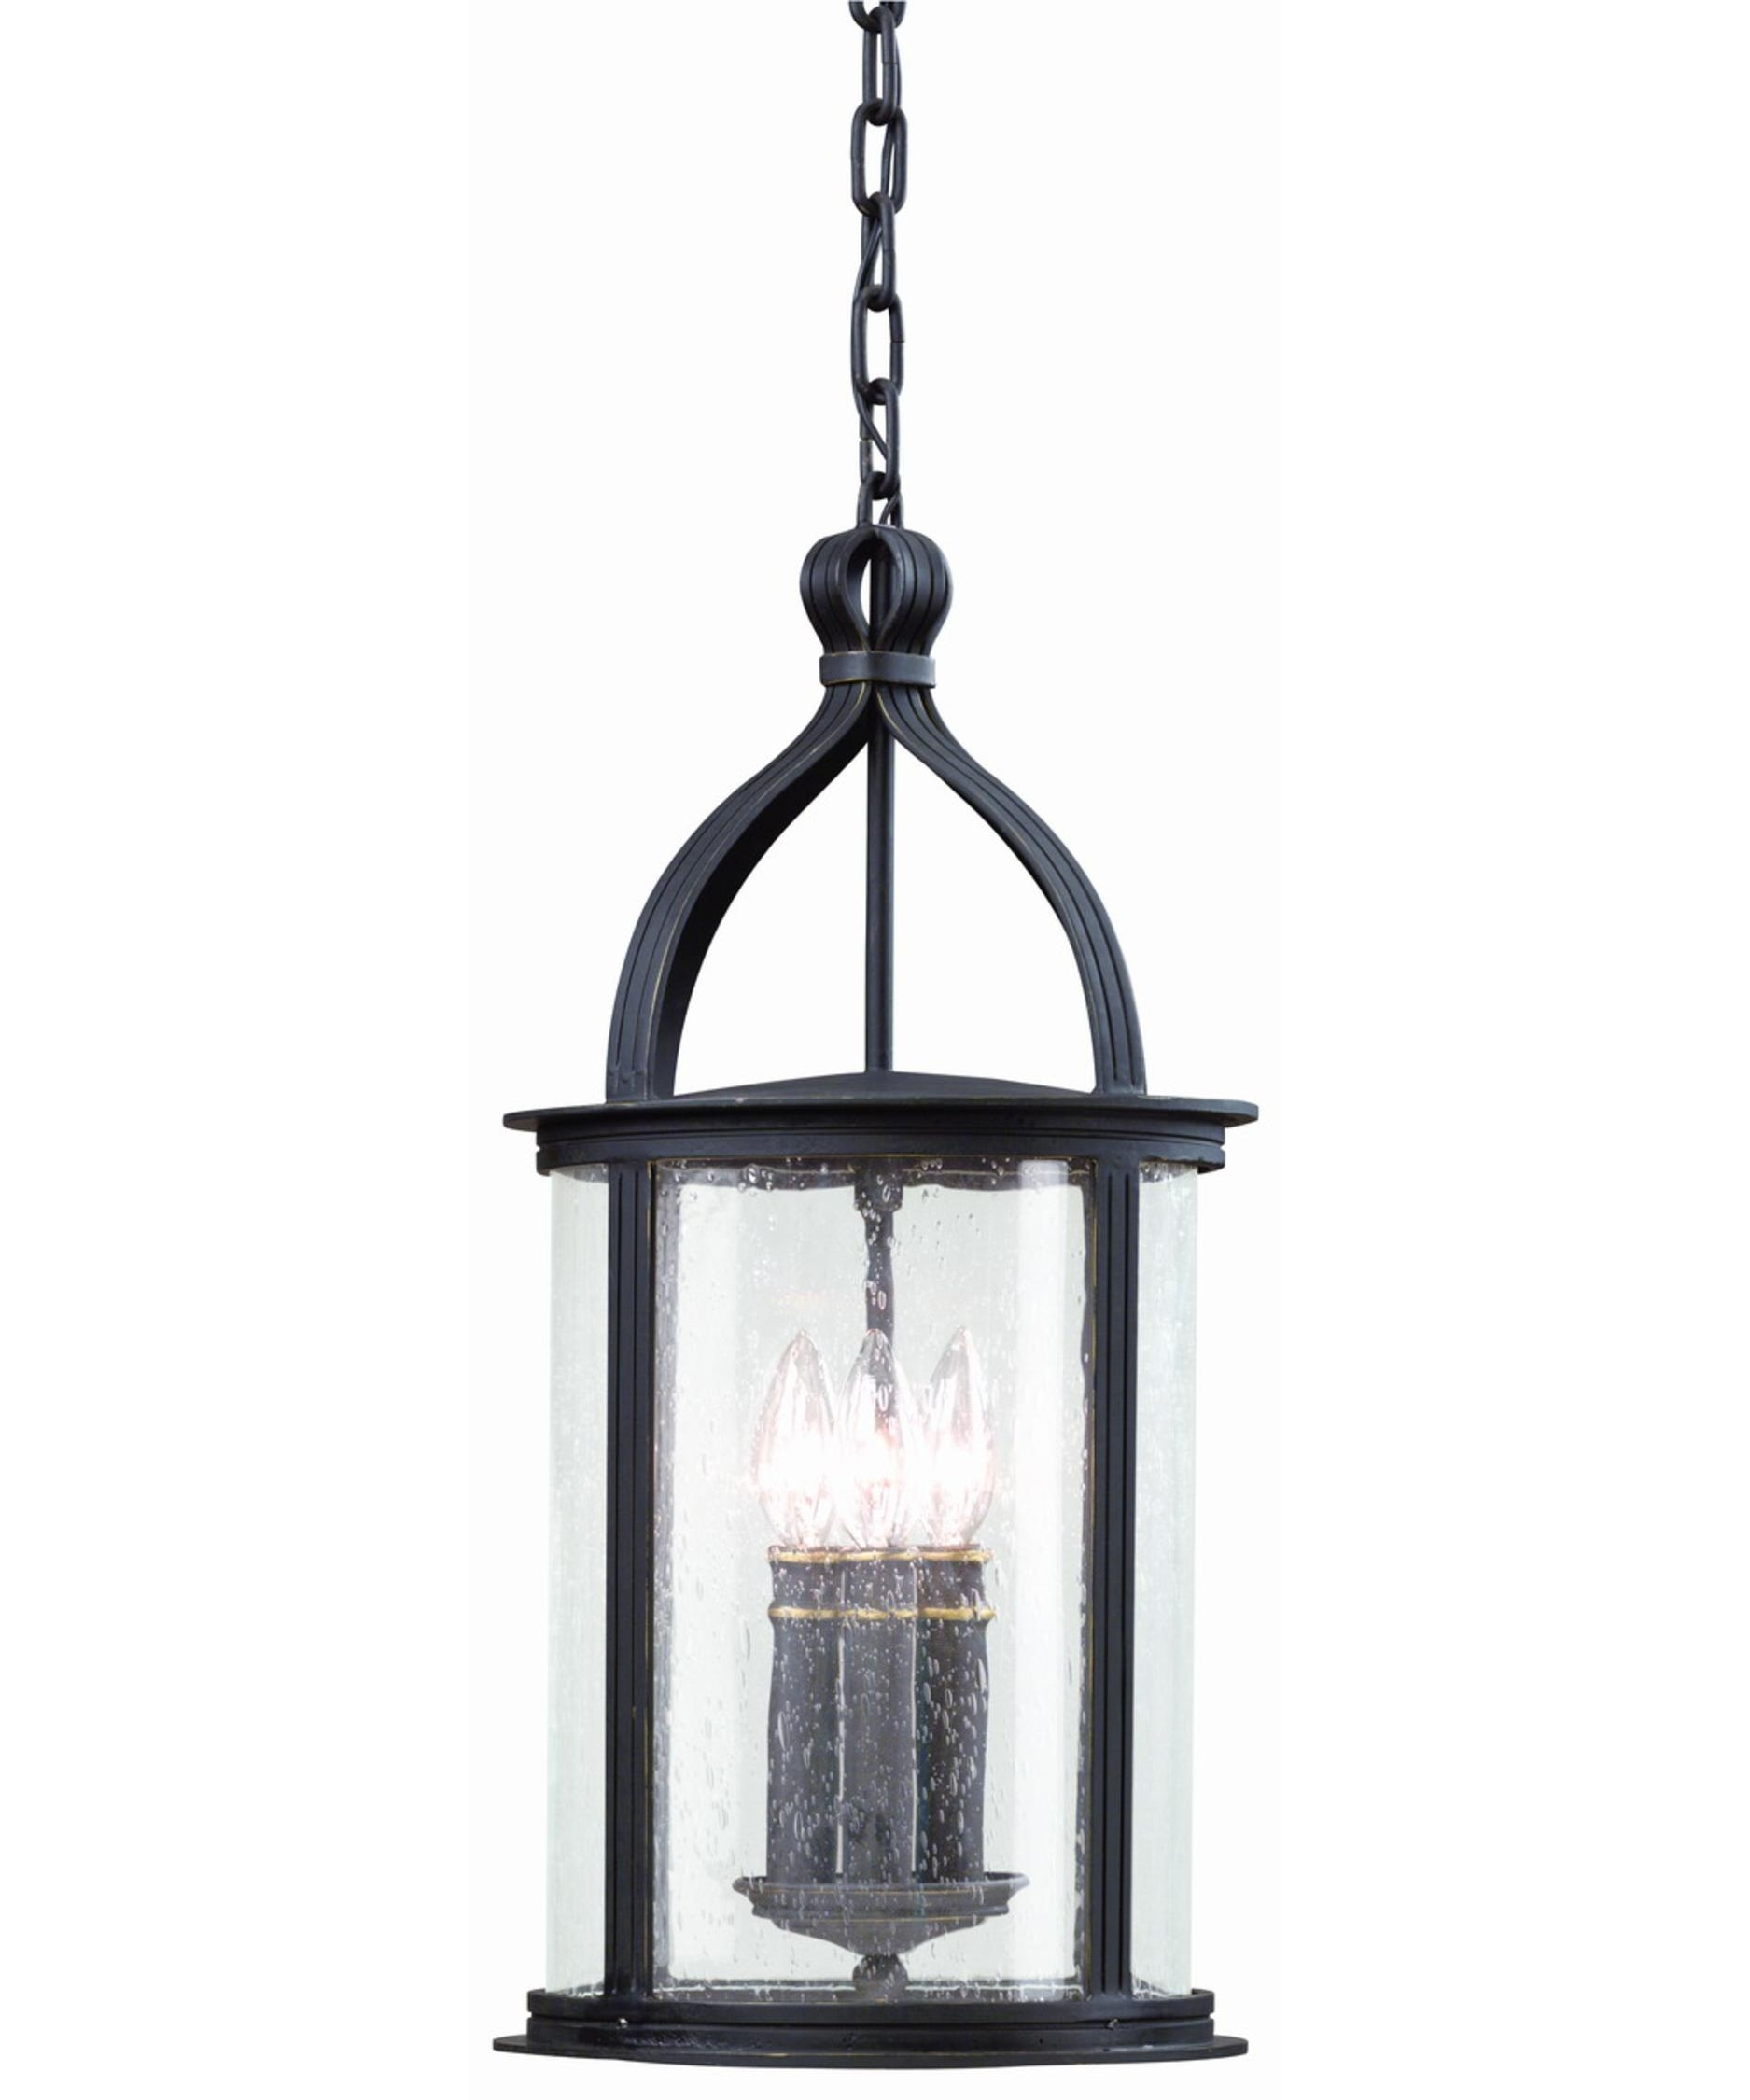 Troy Lighting F9476 Scarsdale 10 Inch Wide 3 Light Outdoor Hanging Intended For Most Current Outdoor Glass Lanterns (View 18 of 20)